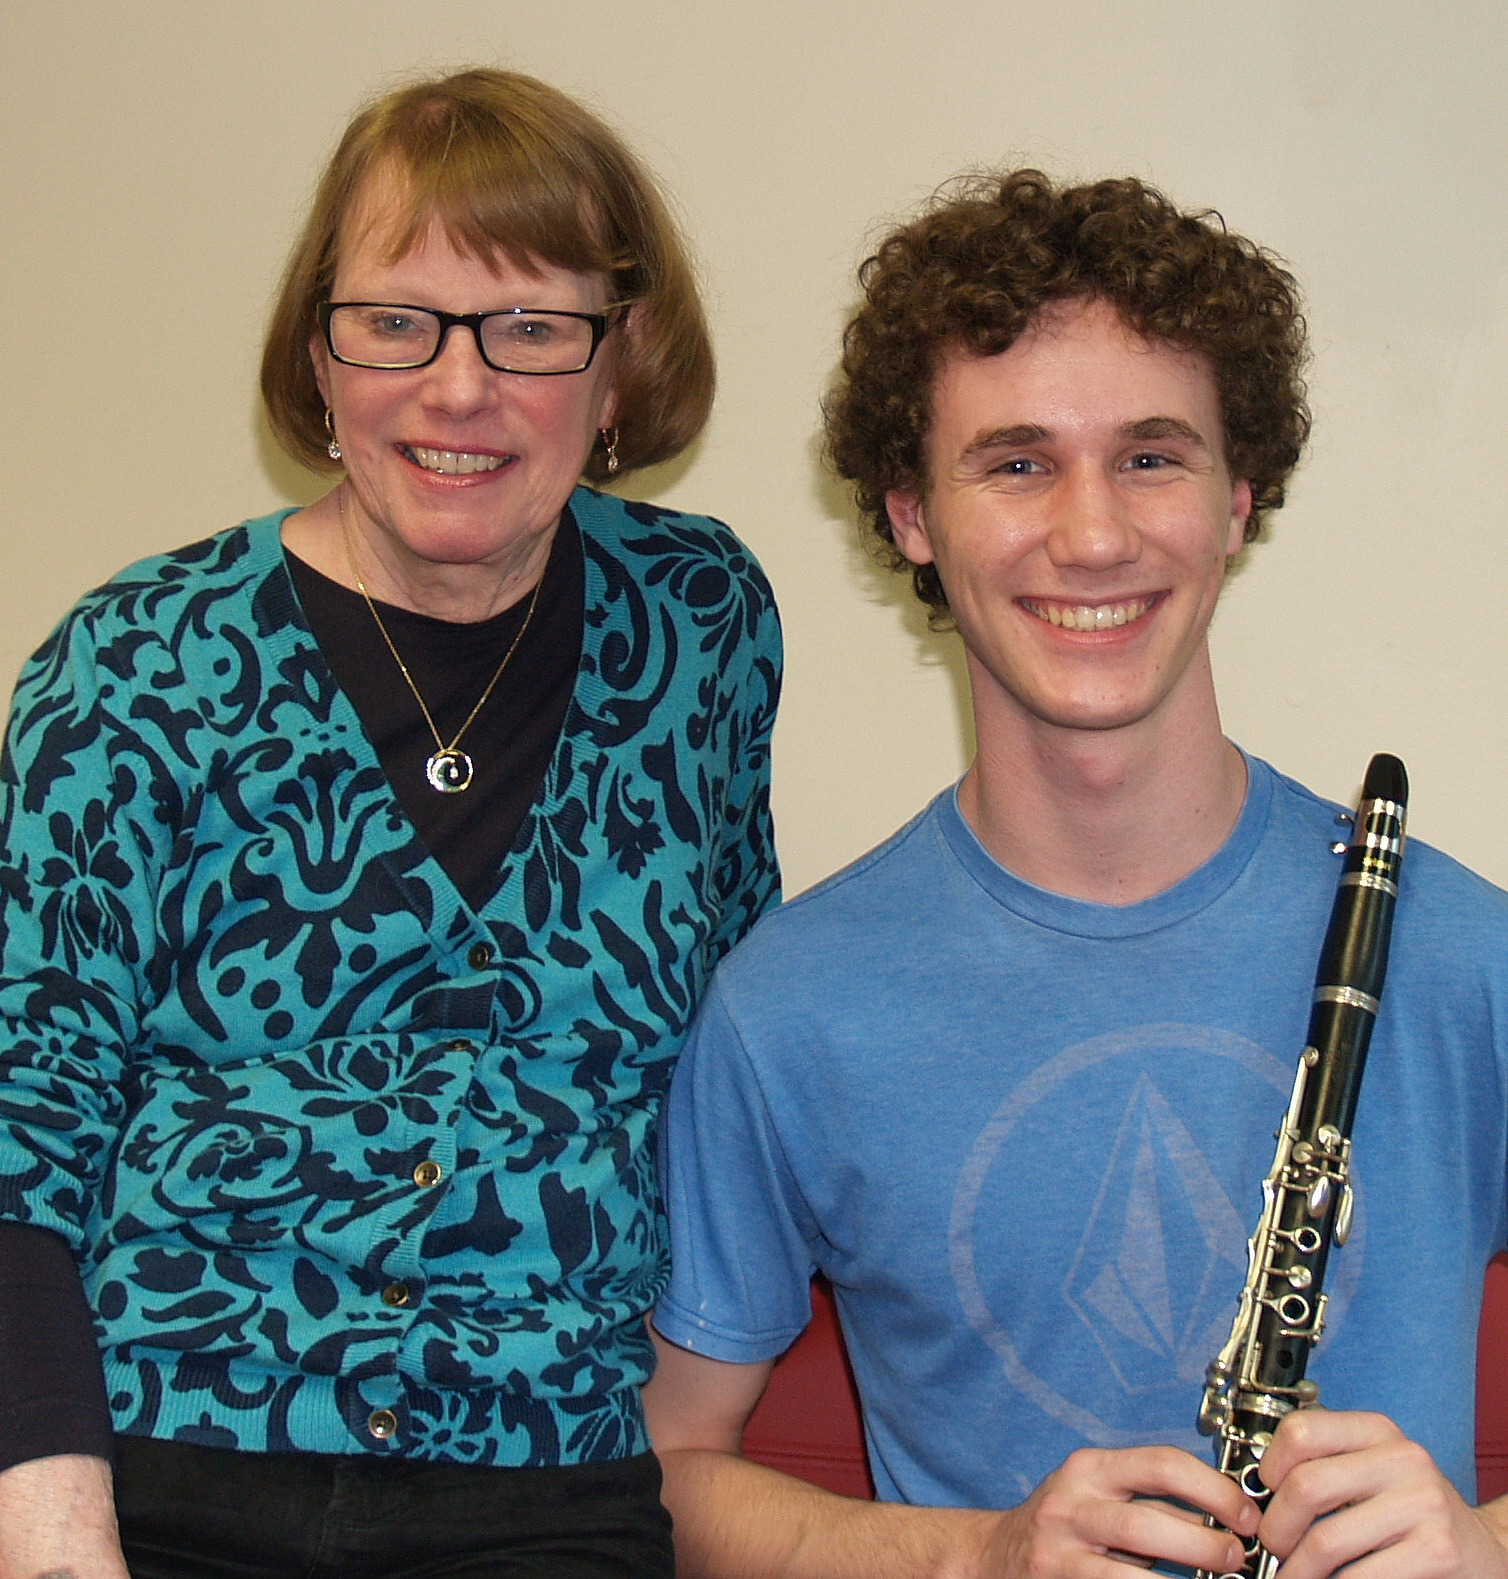 Jonathan Salman receives a clarinet from Instrument Match chair Leslie Barger